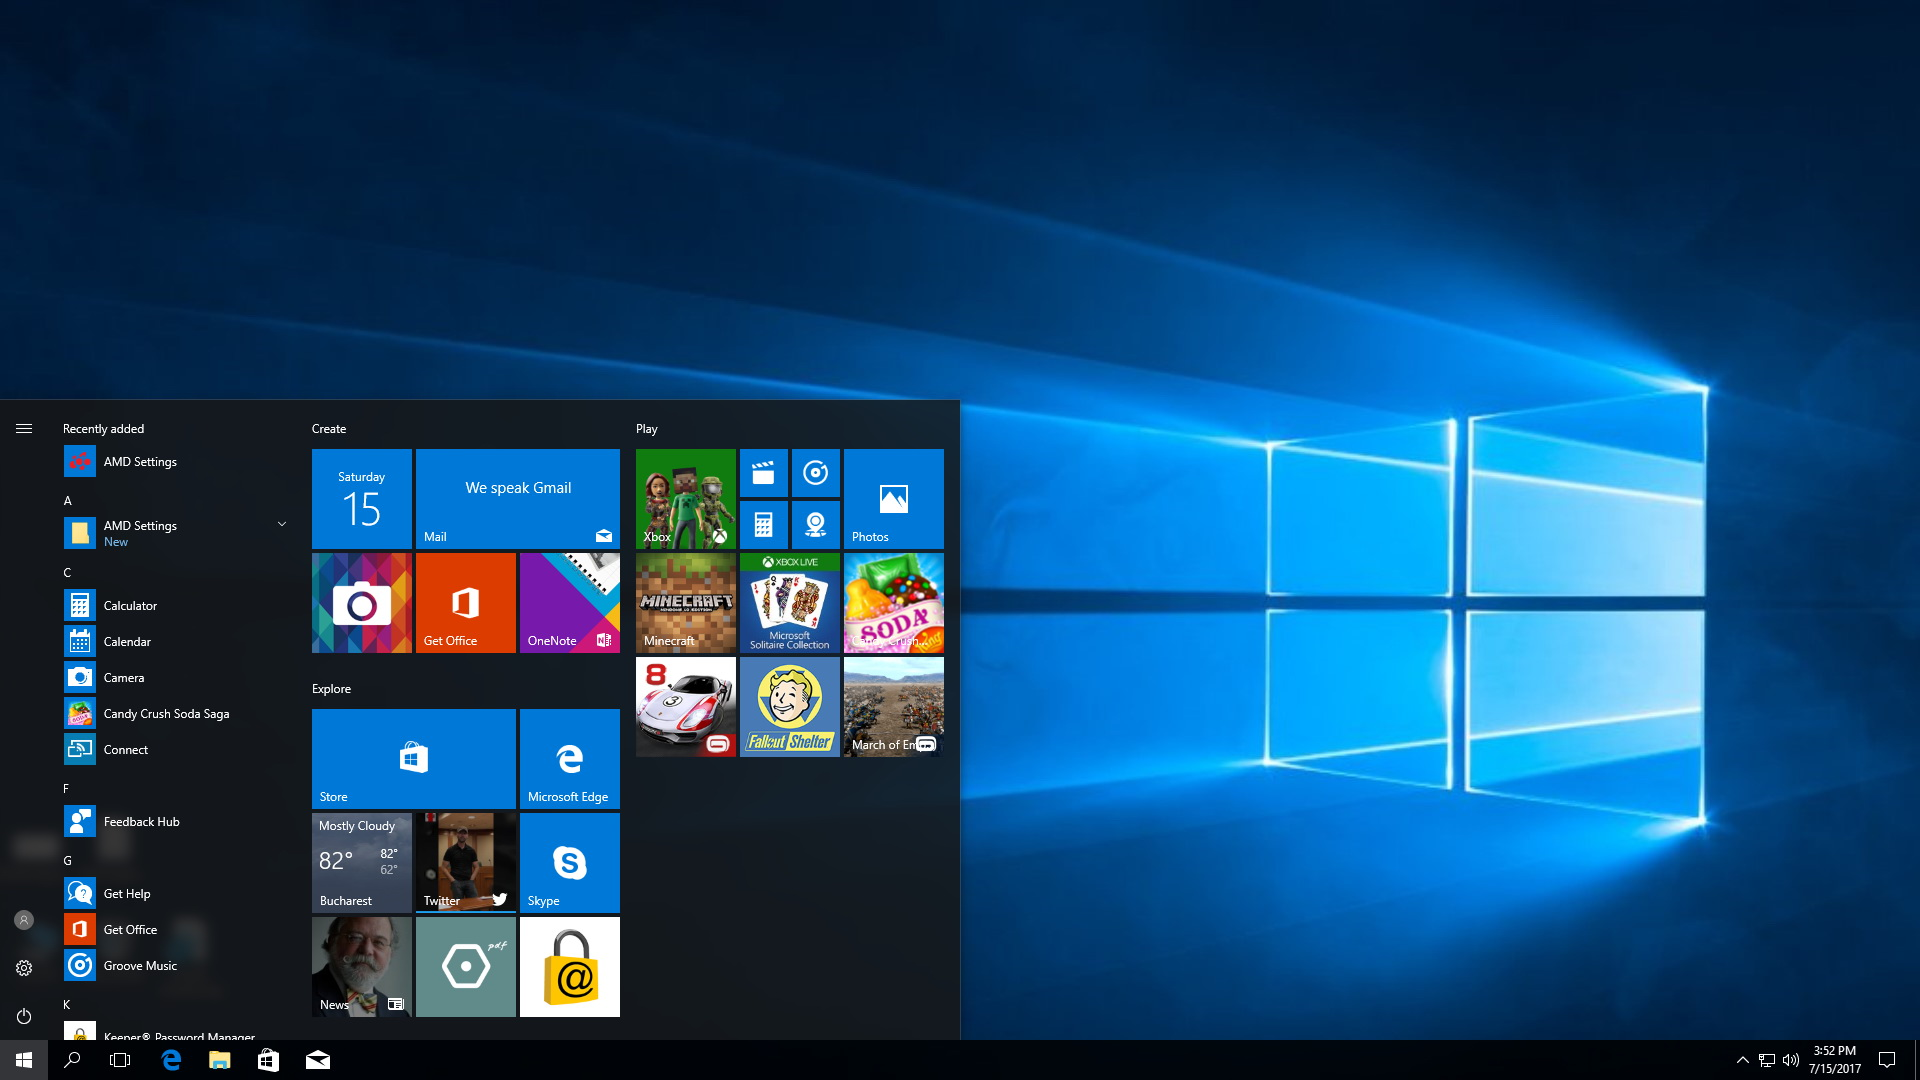 How to uninstall built in apps from Windows 10 – Oueta